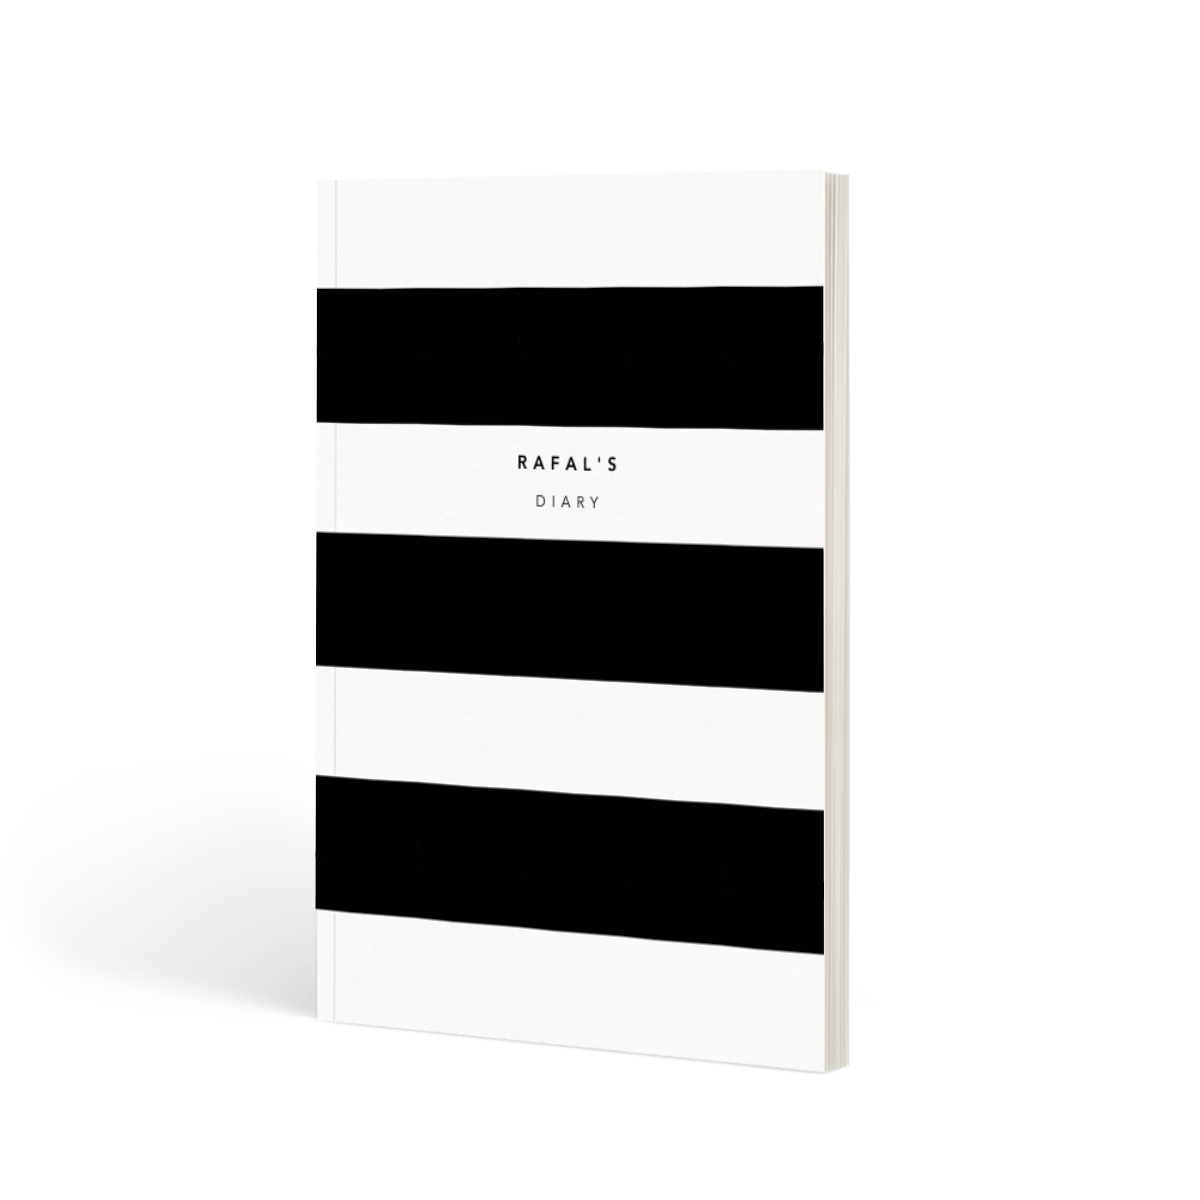 Https%3a%2f%2fwww.papier.com%2fproduct image%2f53768%2f7%2fblack stripe 12948 front 1562663161.png?ixlib=rb 1.1